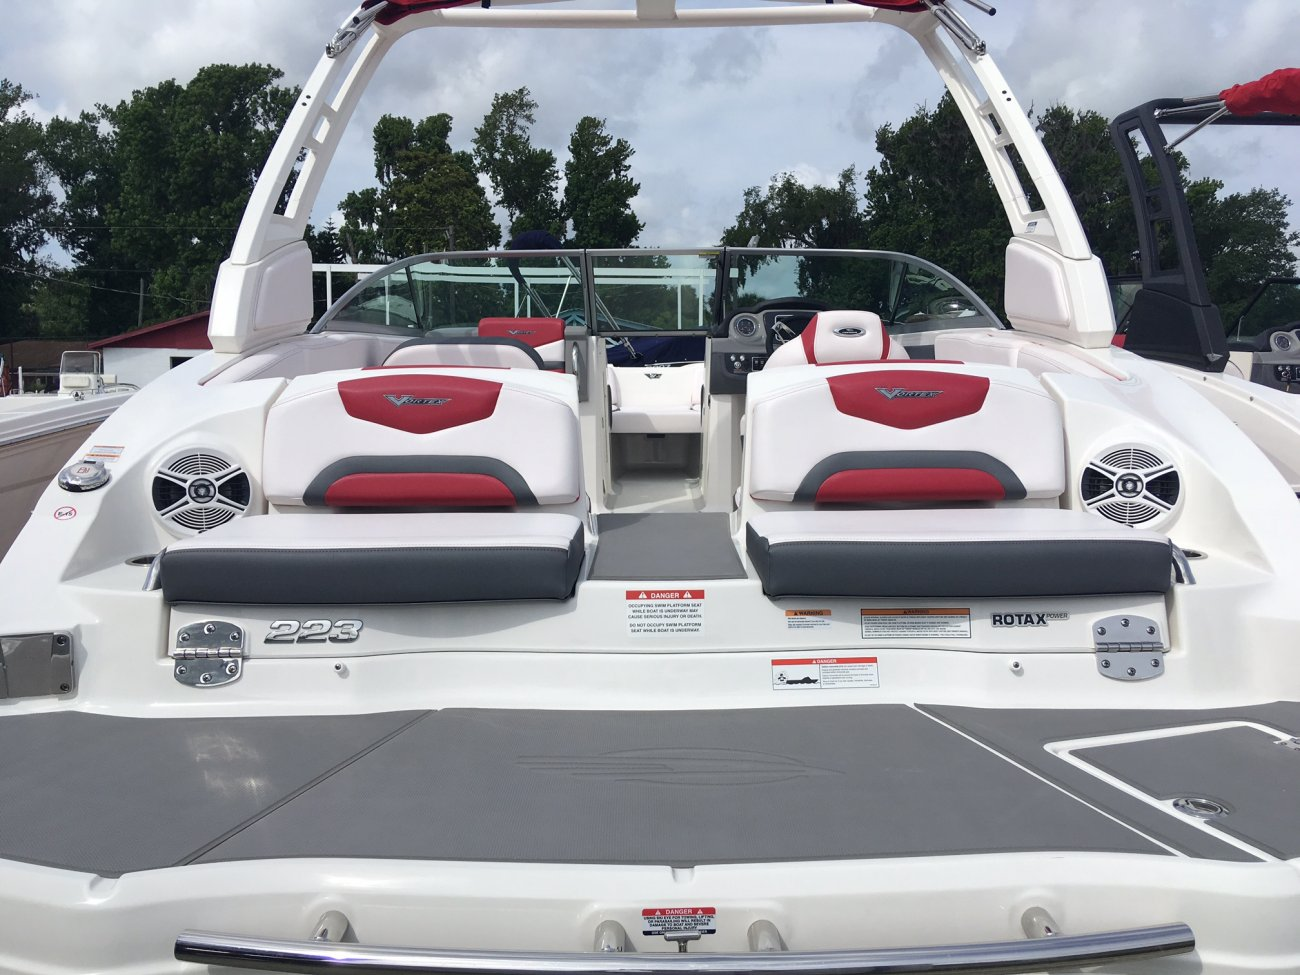 A 223 VR is a Power and could be classed as a Fish and Ski, Jet Boat, Ski Boat, Wakeboard Boat,  or, just an overall Great Boat!